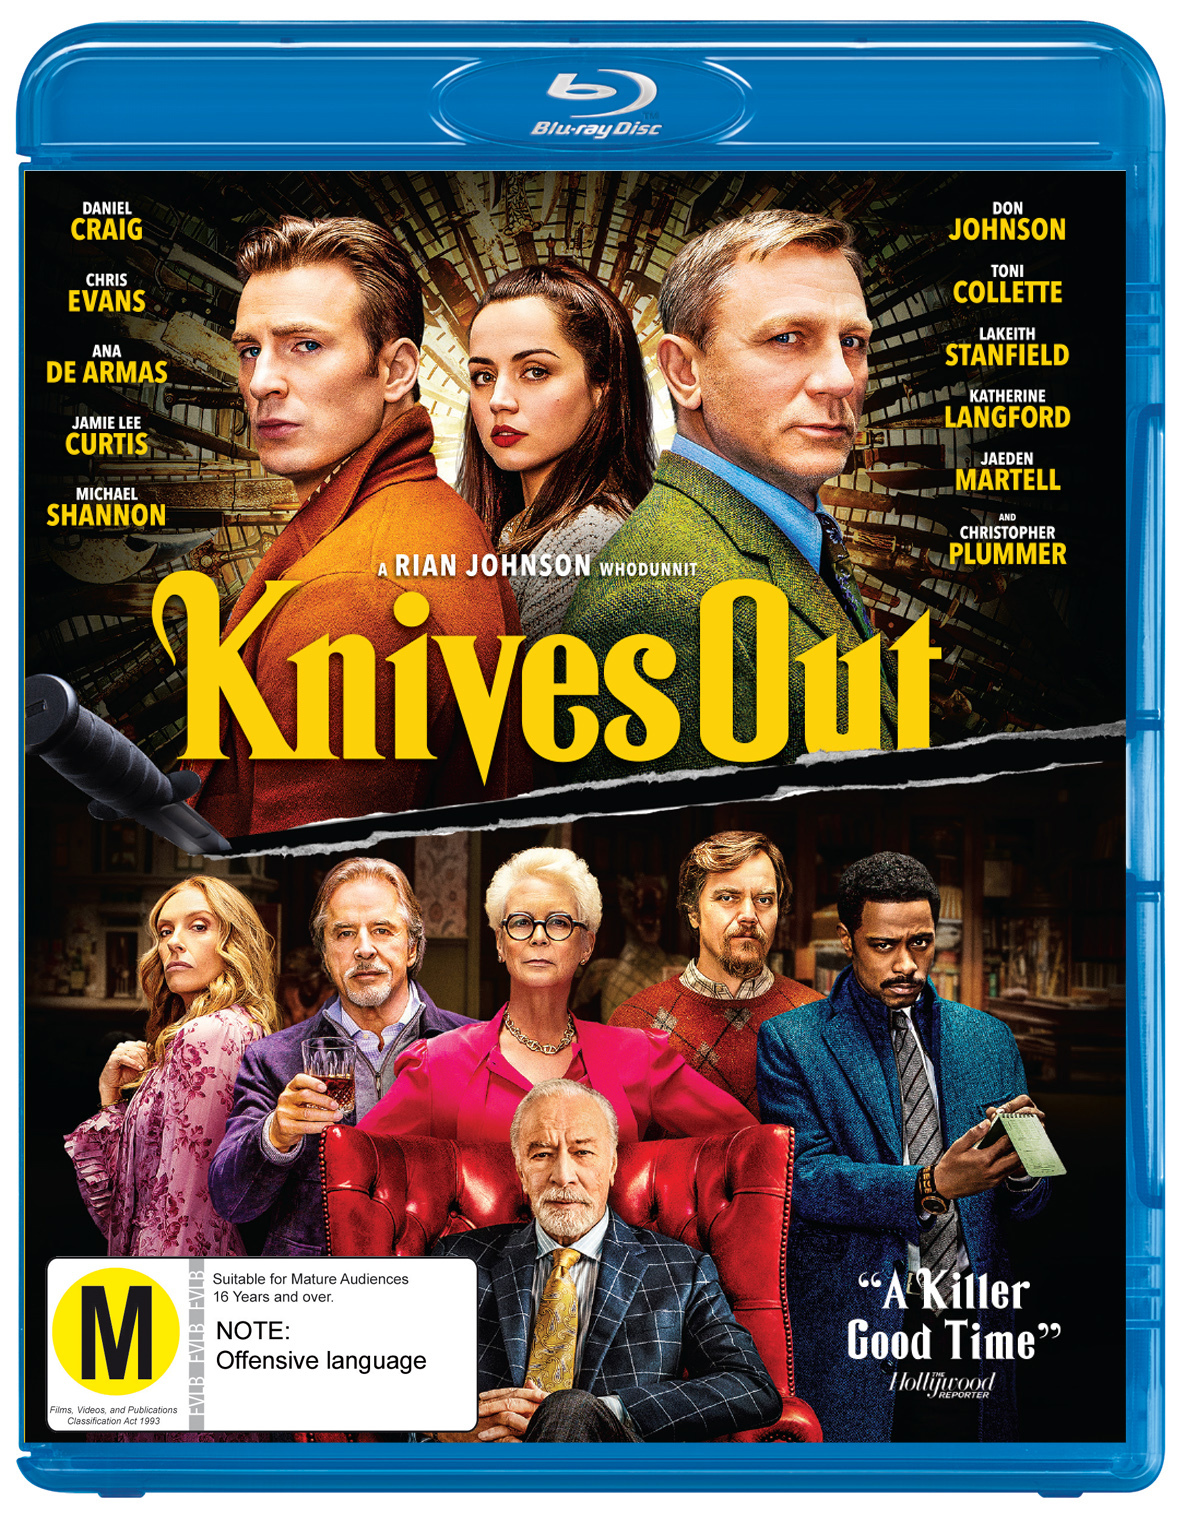 Knives Out on Blu-ray image